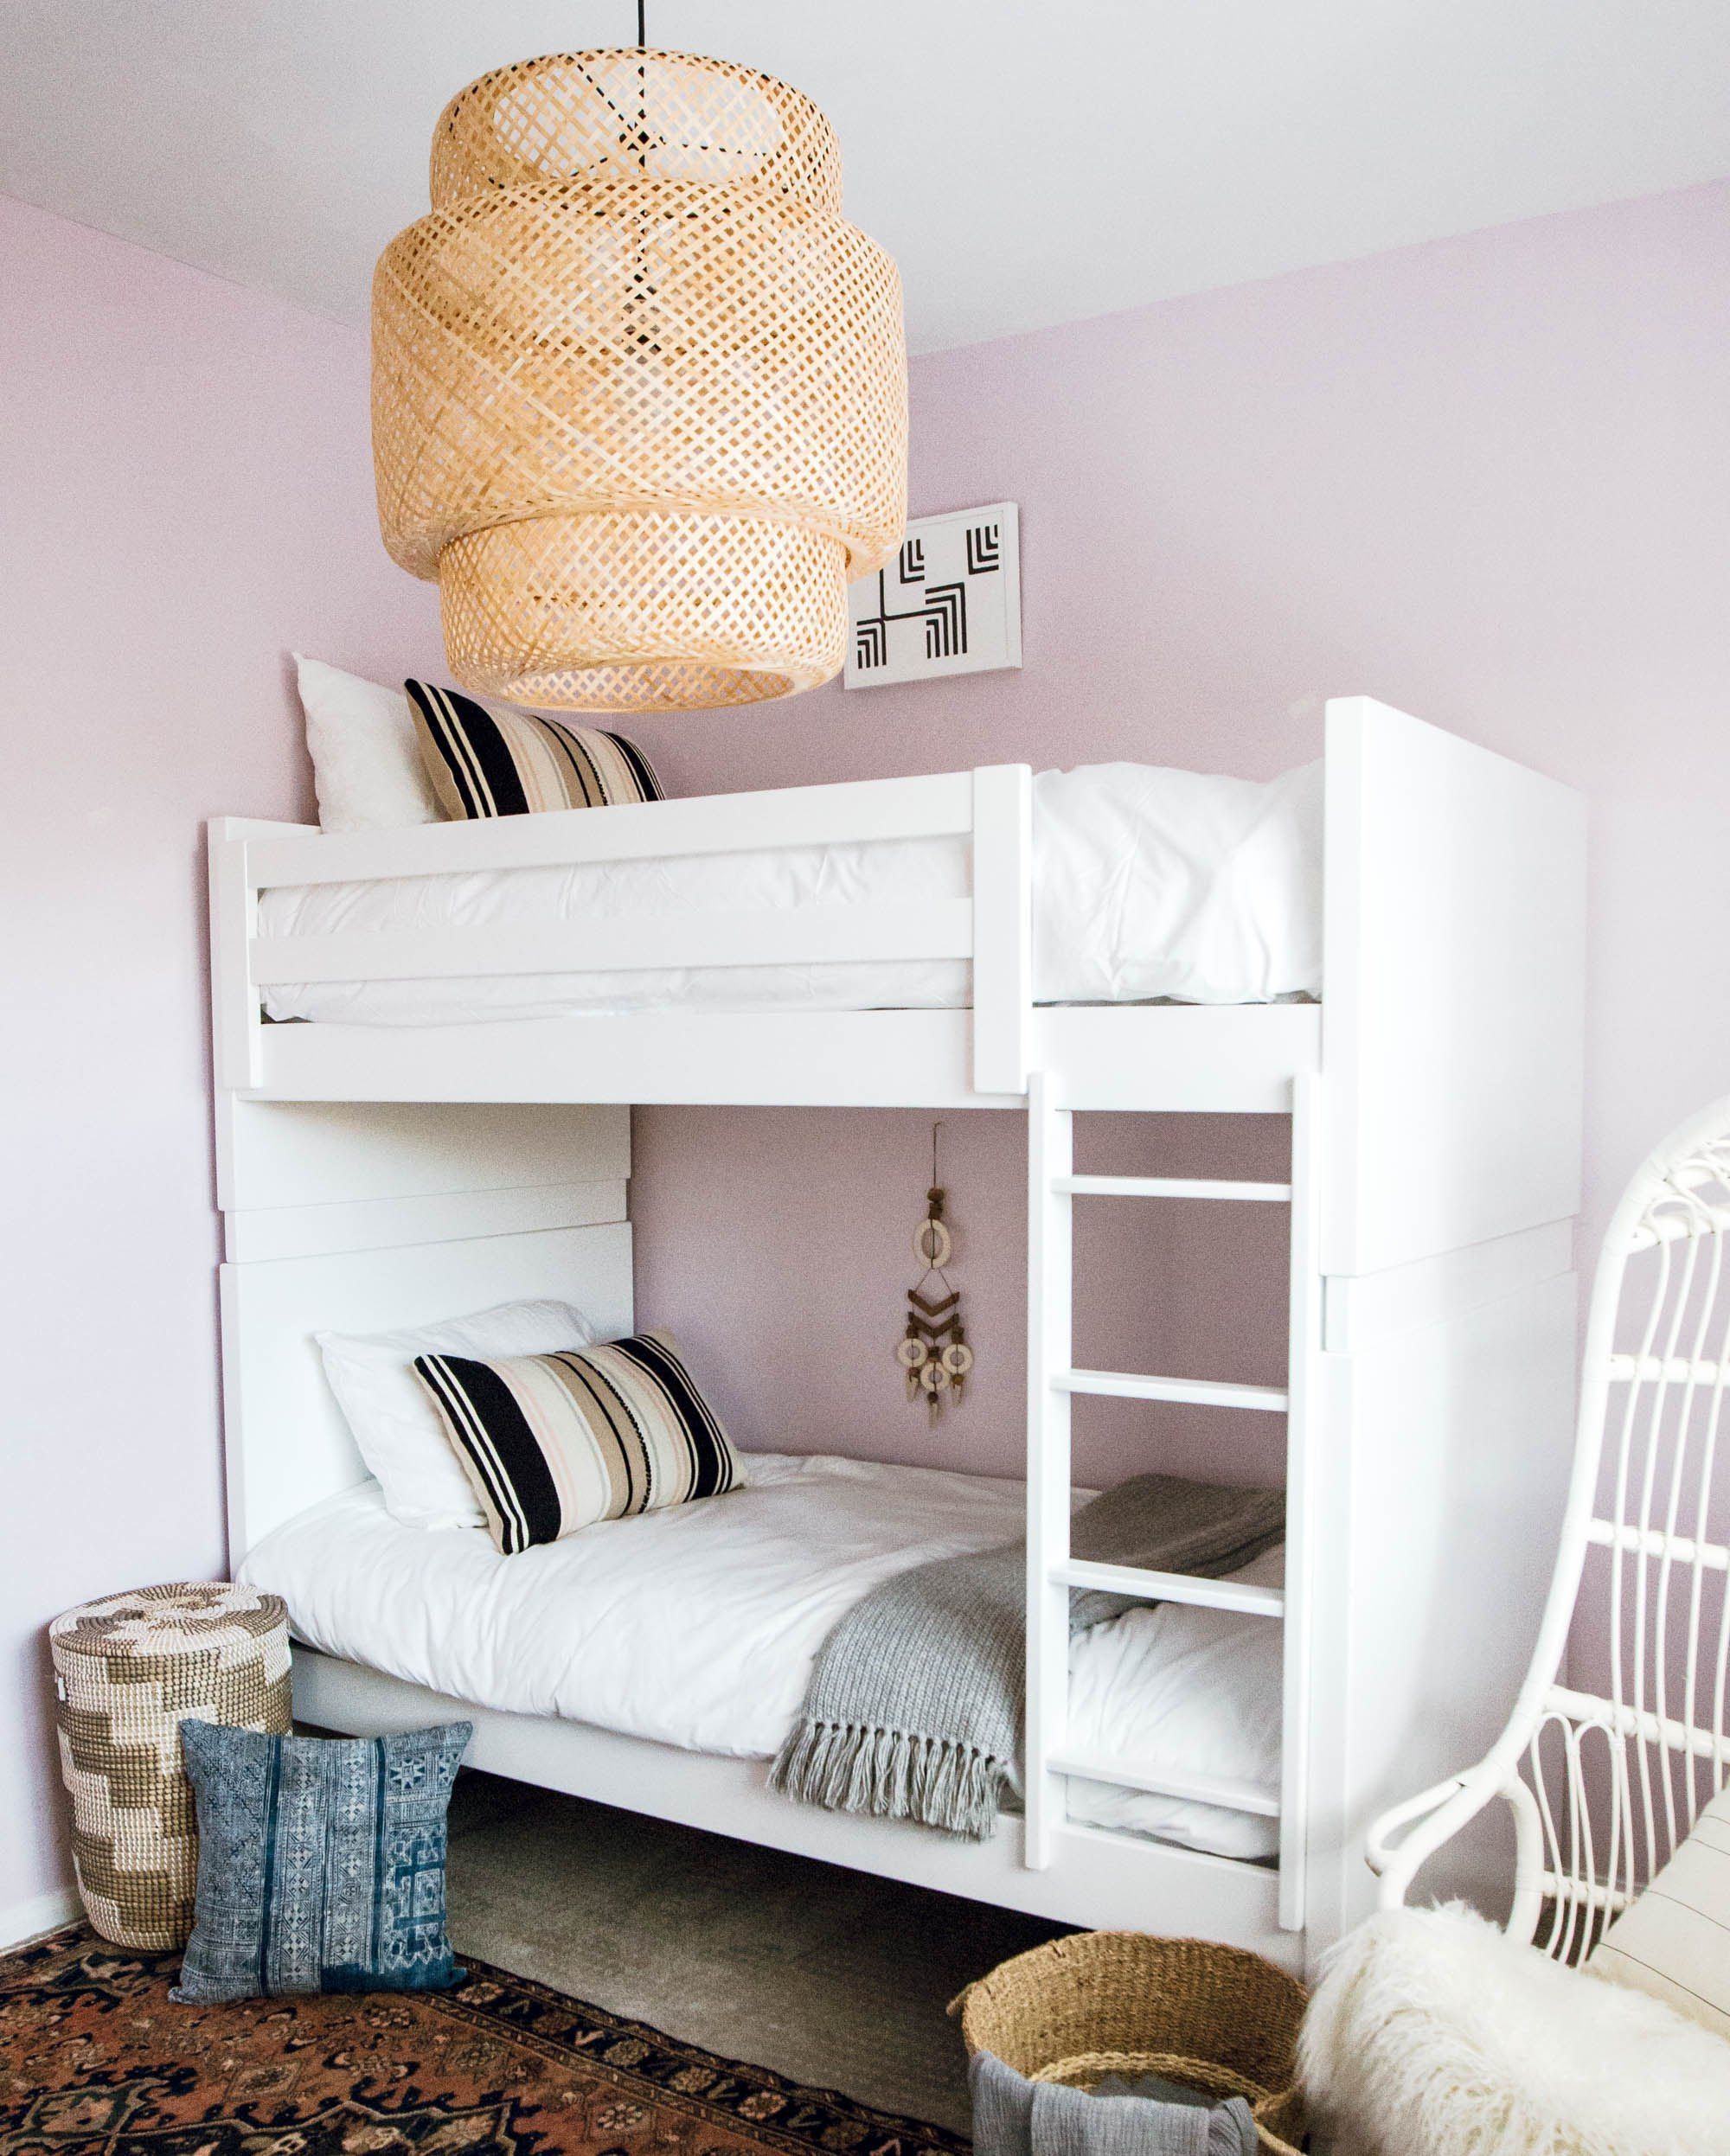 Two magical ways to save space | Modern bunk beds, Shared ...